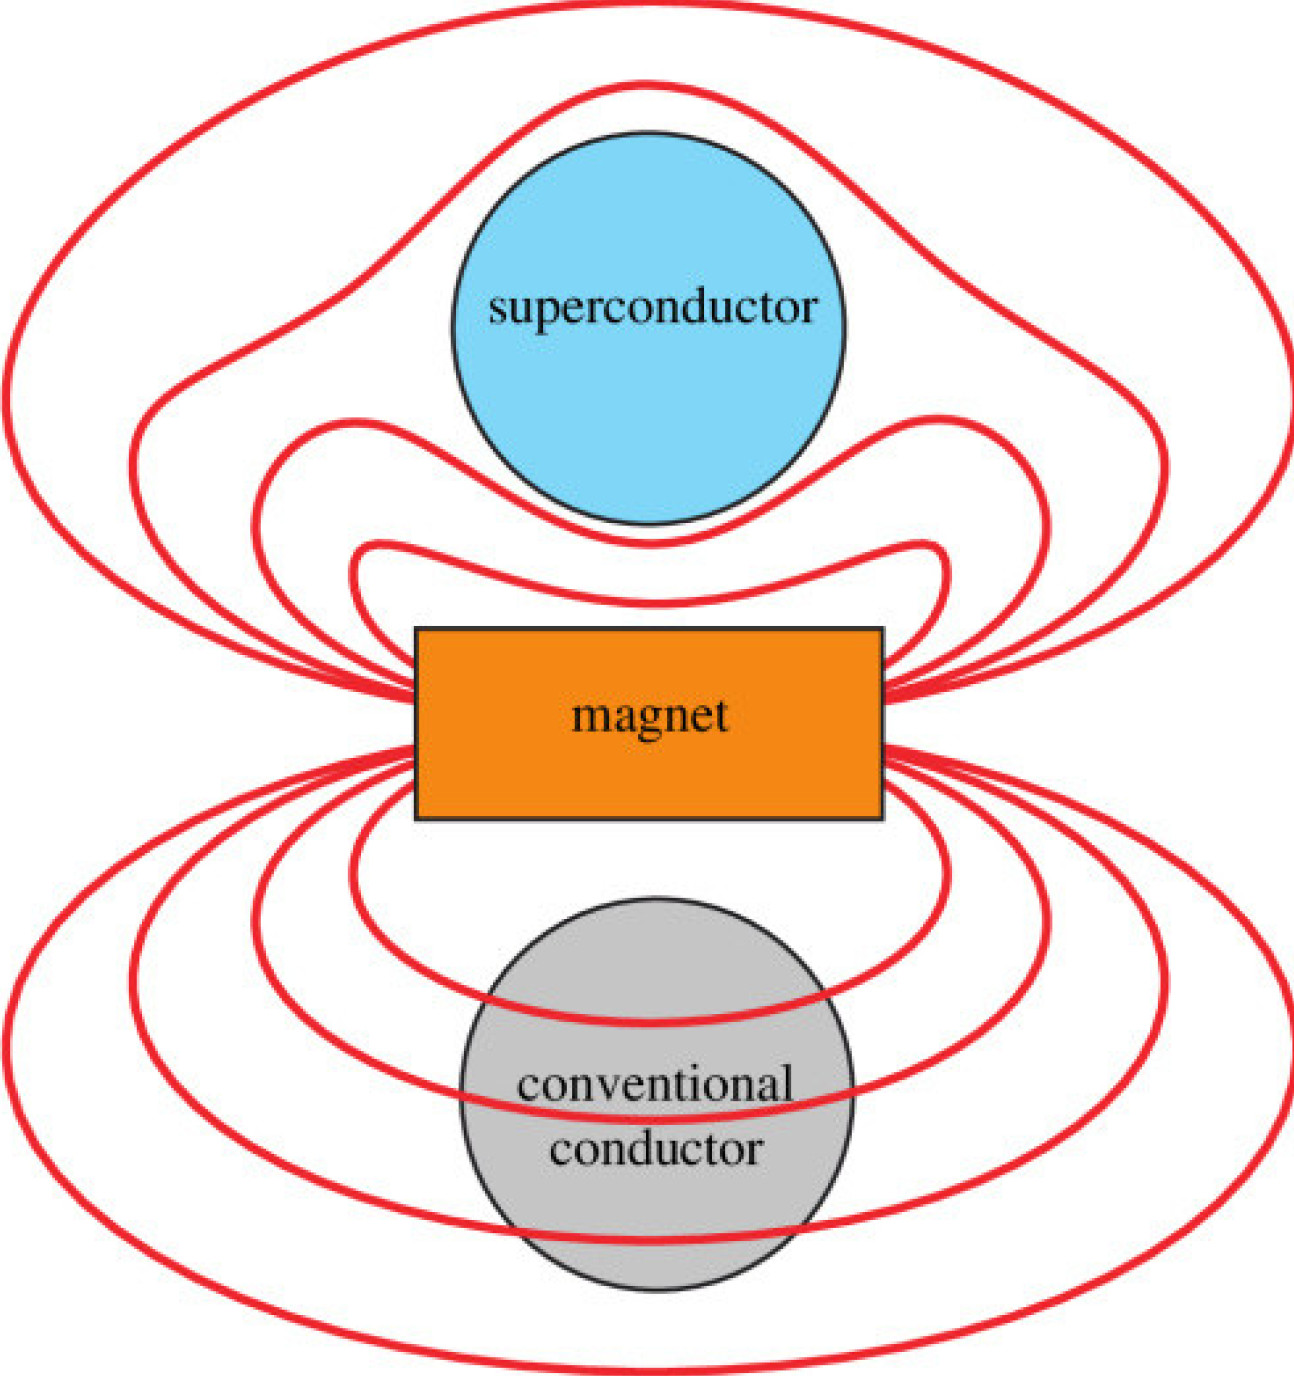 An illustration of an electromagnet